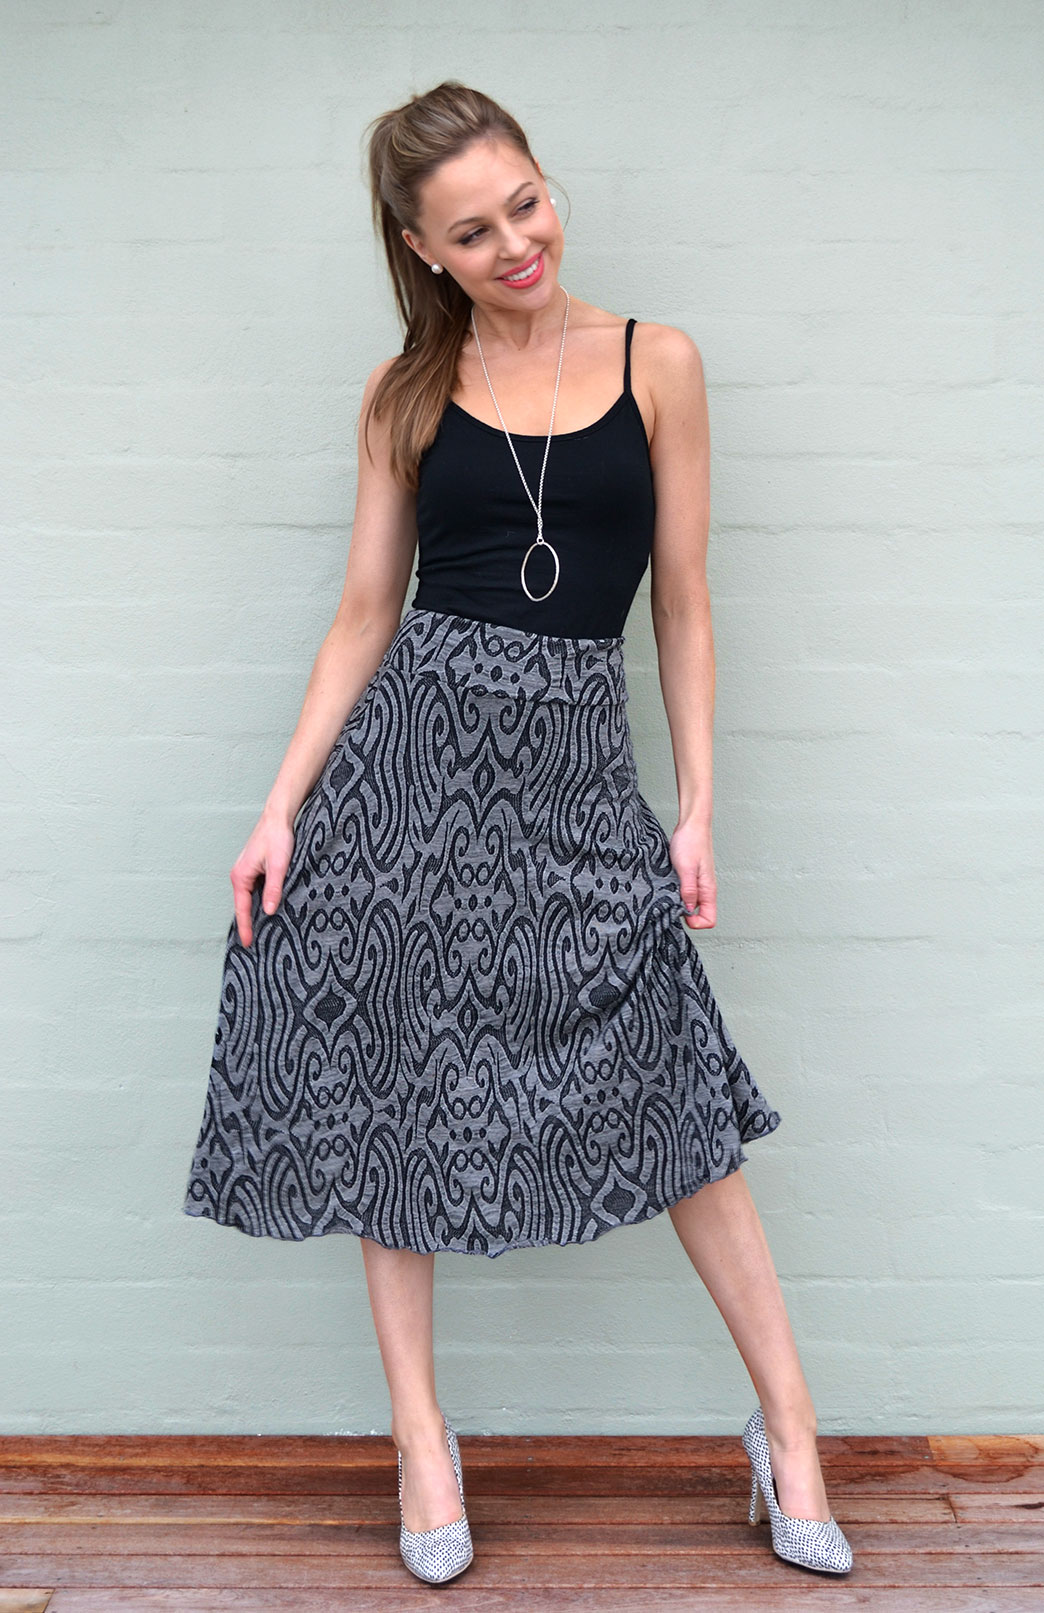 Inca Twirl Skirt - Women's Black and Grey Patterned A-Line Skirt - Smitten Merino Tasmania Australia